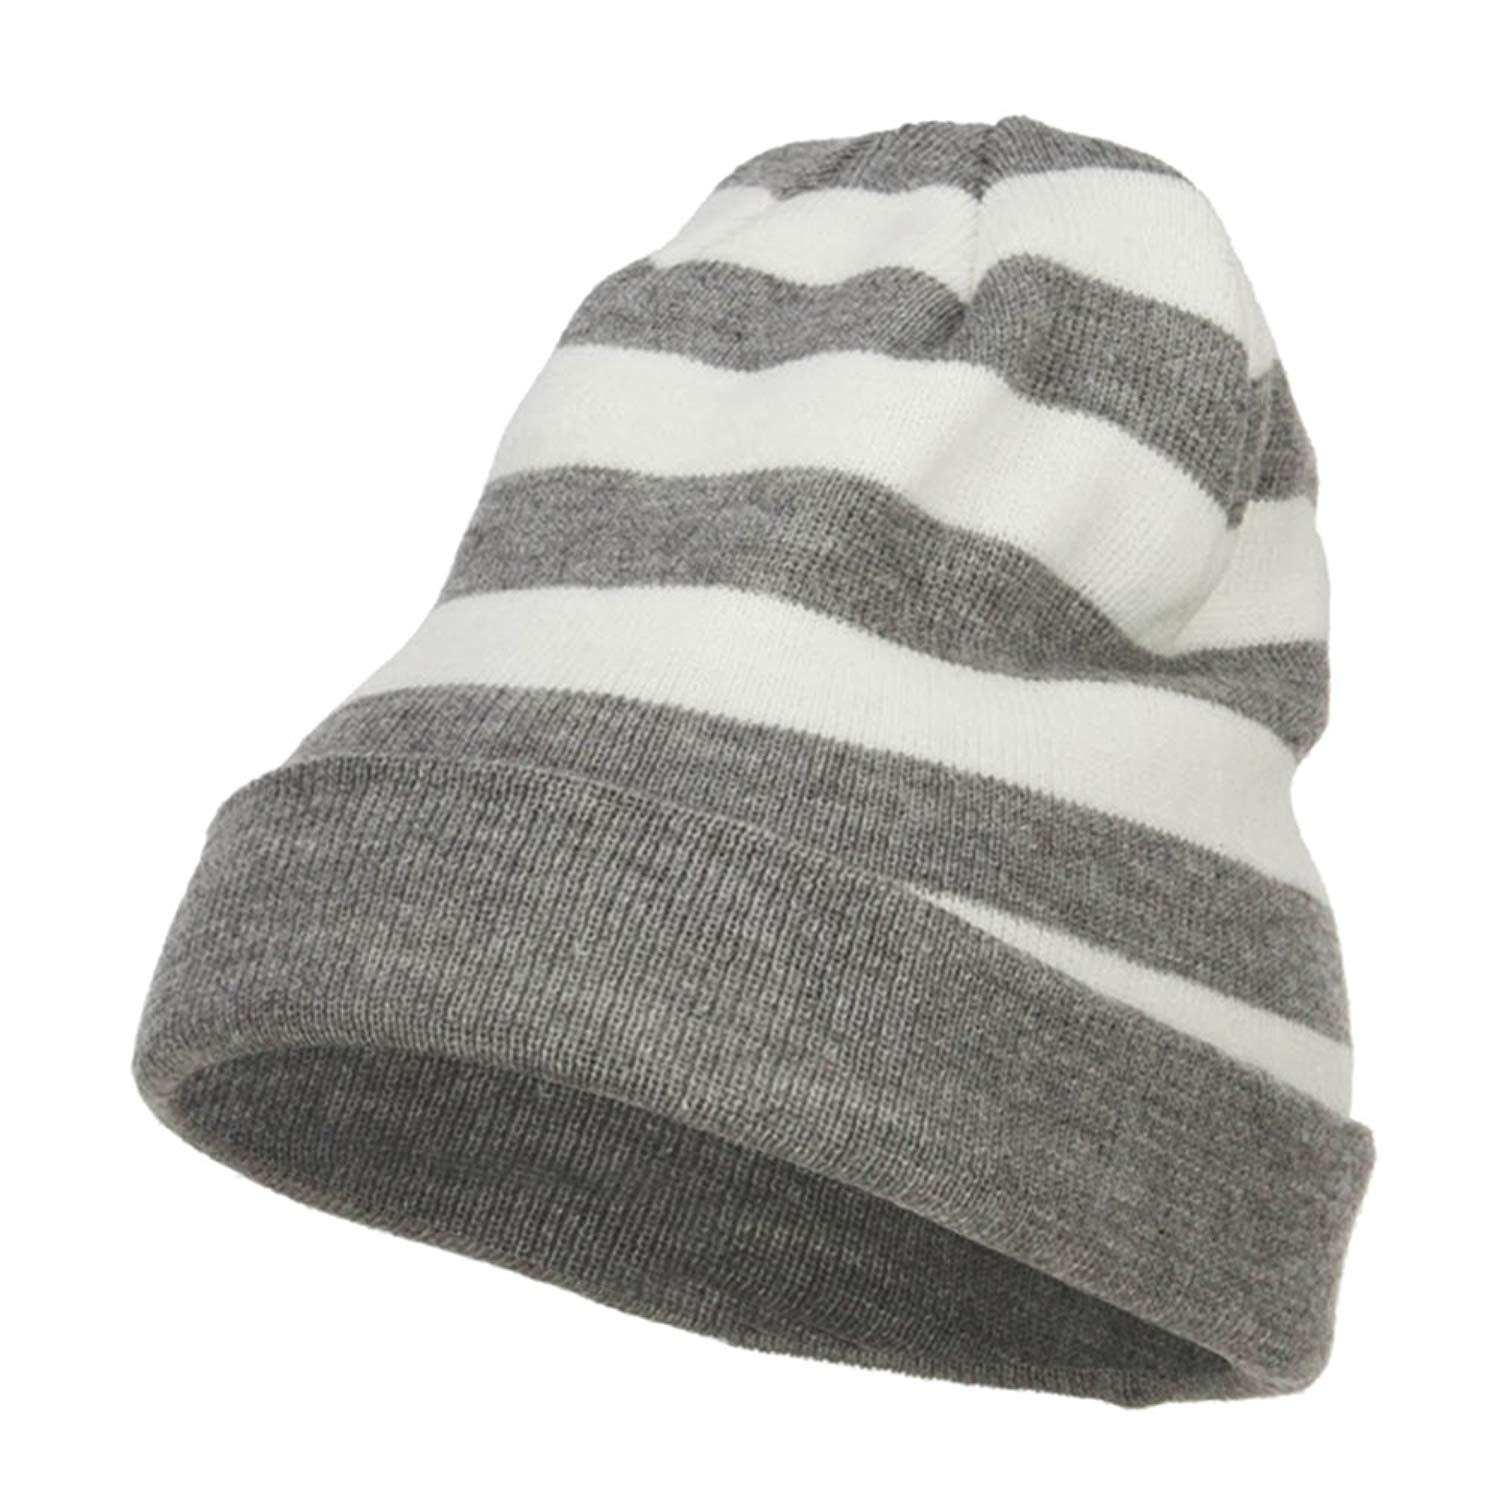 4cfb681977d Get Quotations · Striped Long Beanie